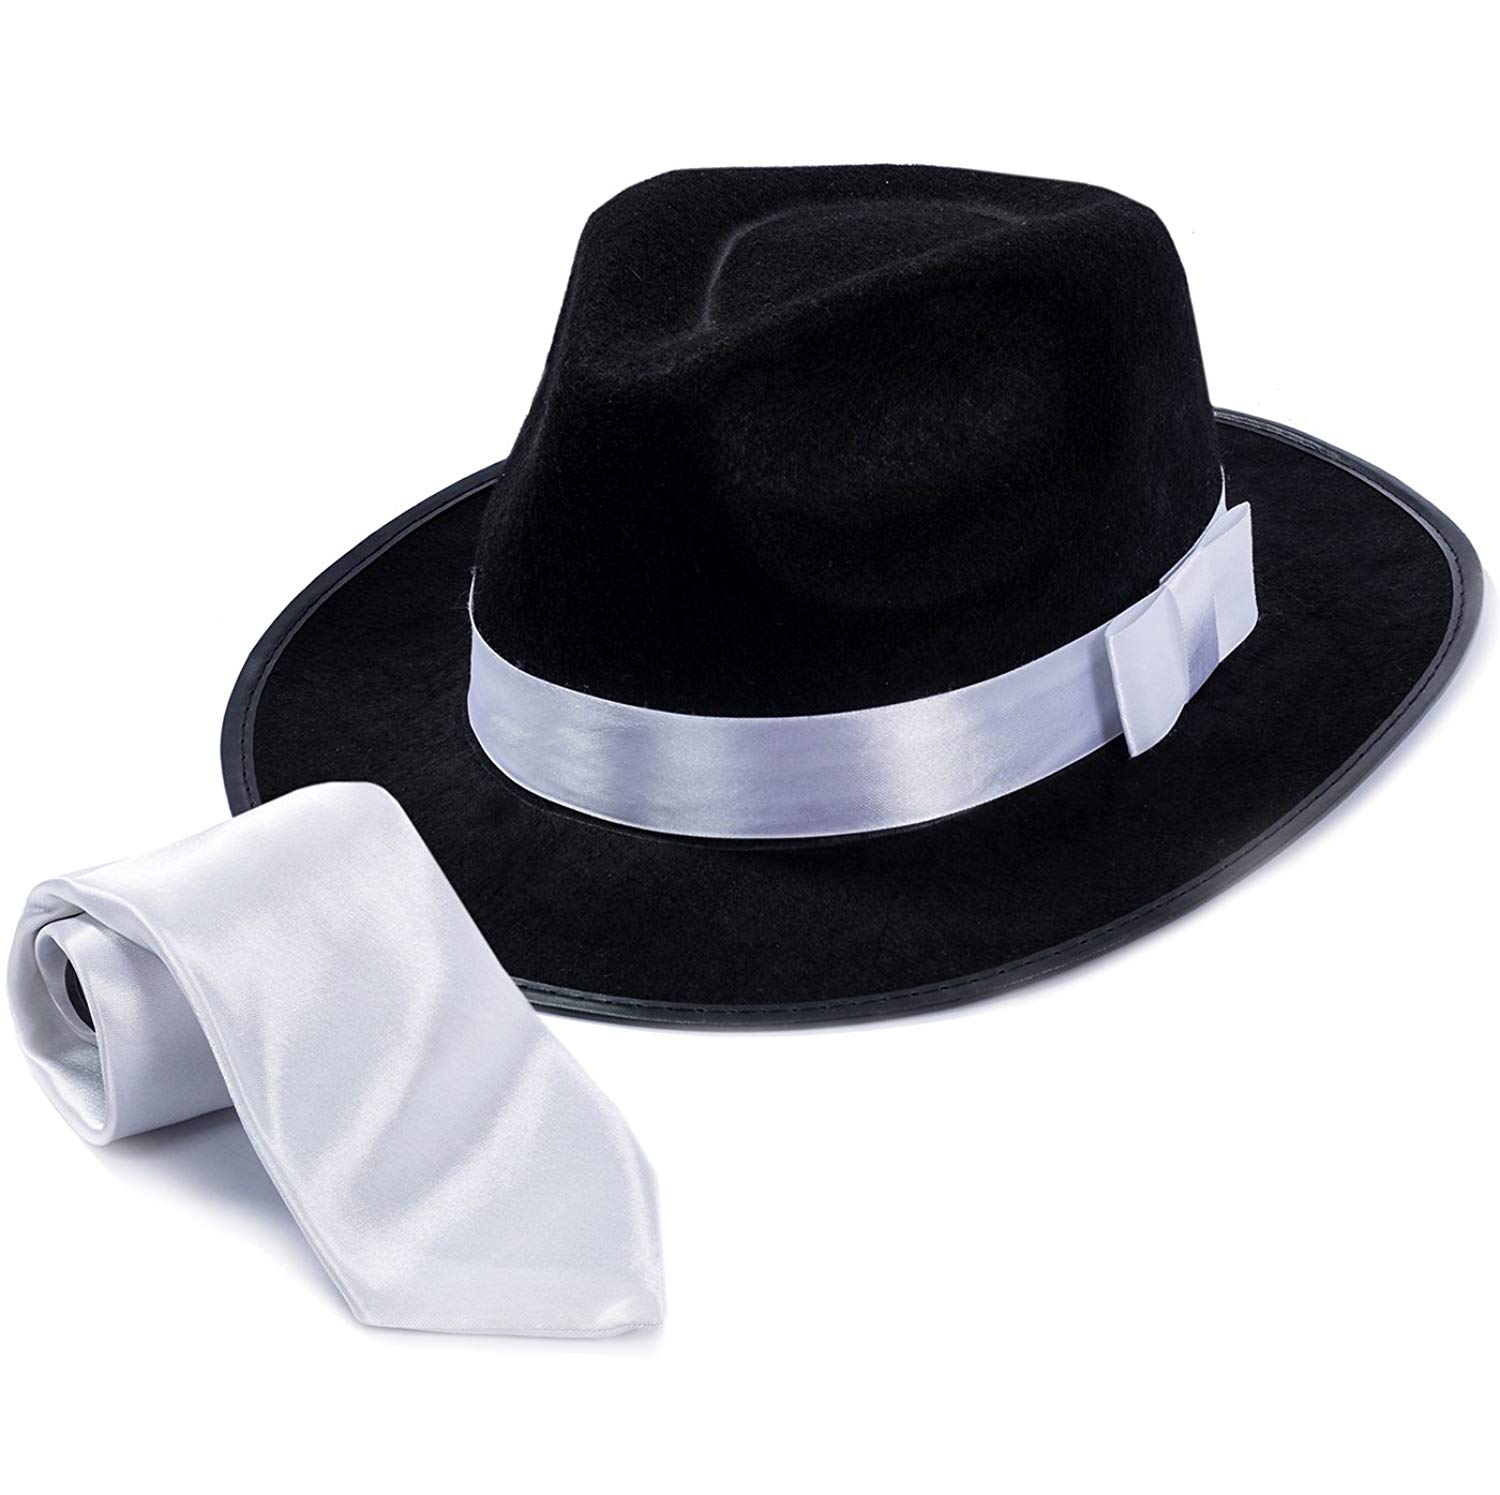 c590dbf383beb Get Quotations · Tigerdoe Fedora Gangster Hat - Mobster Costume - Felt Hat    White Neck Tie - (